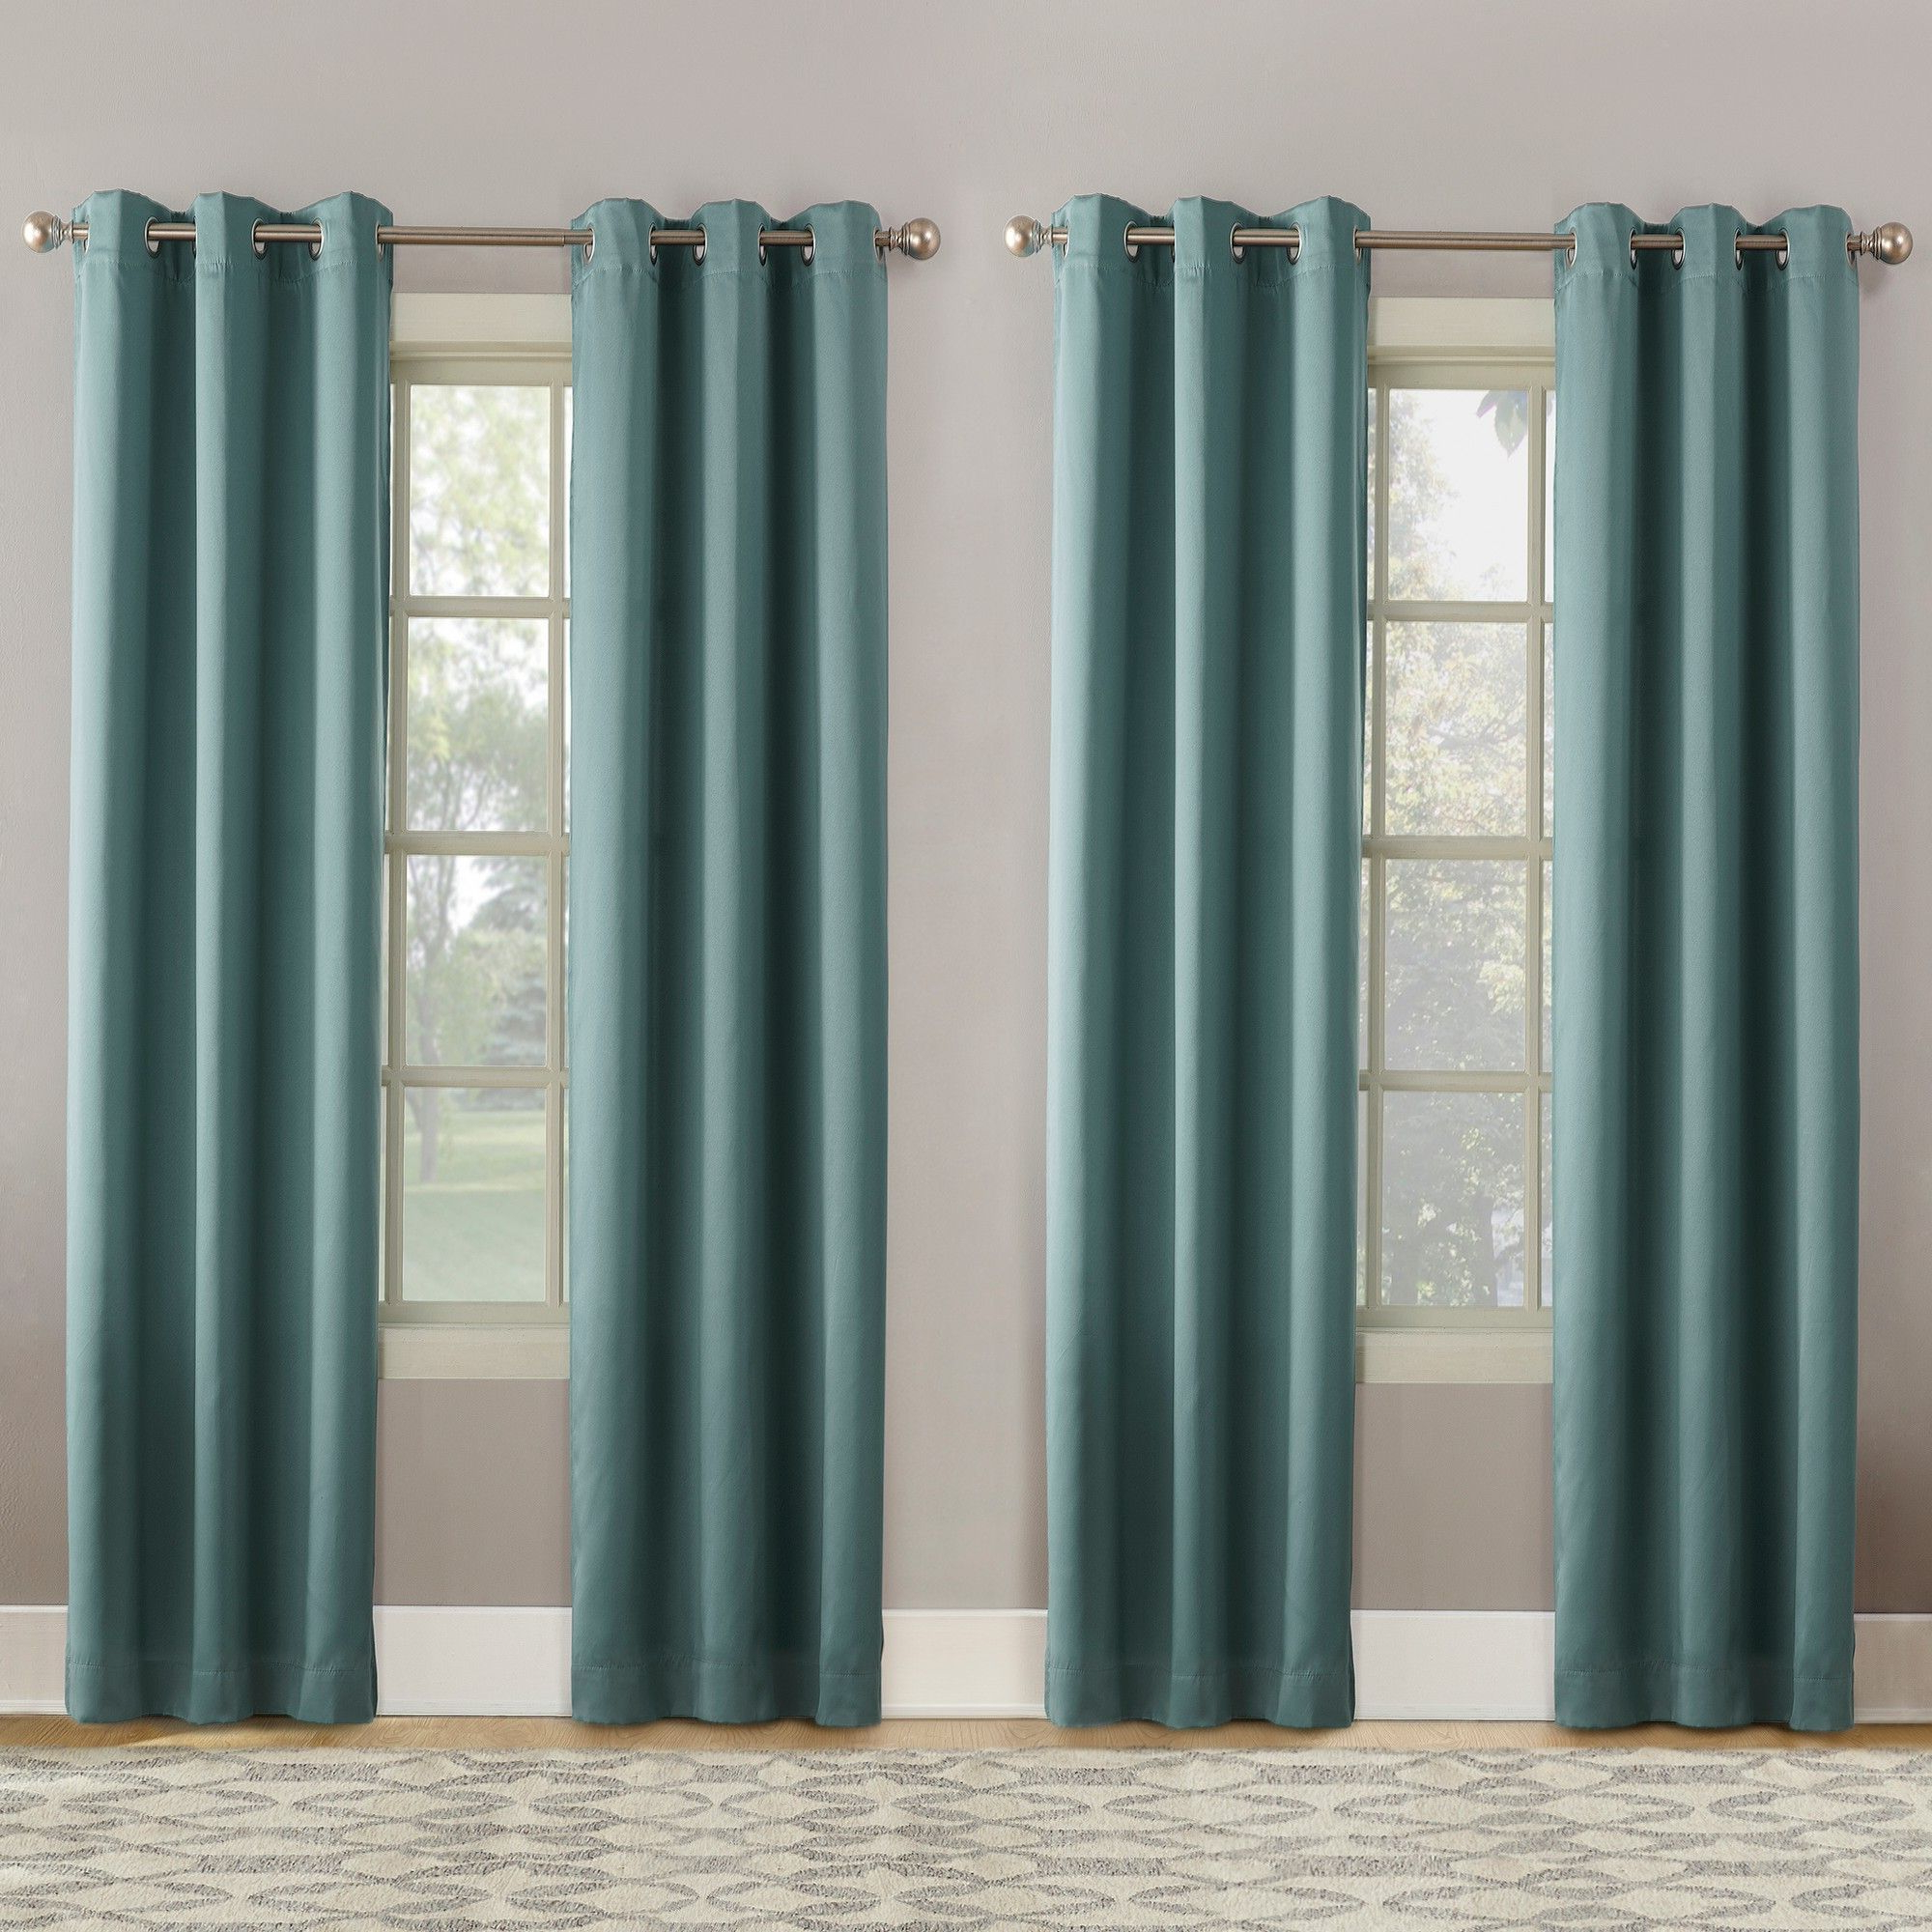 2020 Geometric Print Textured Thermal Insulated Grommet Curtain Panels Within Clarke Geometric Print Textured Thermal Insulated Grommet (View 5 of 20)